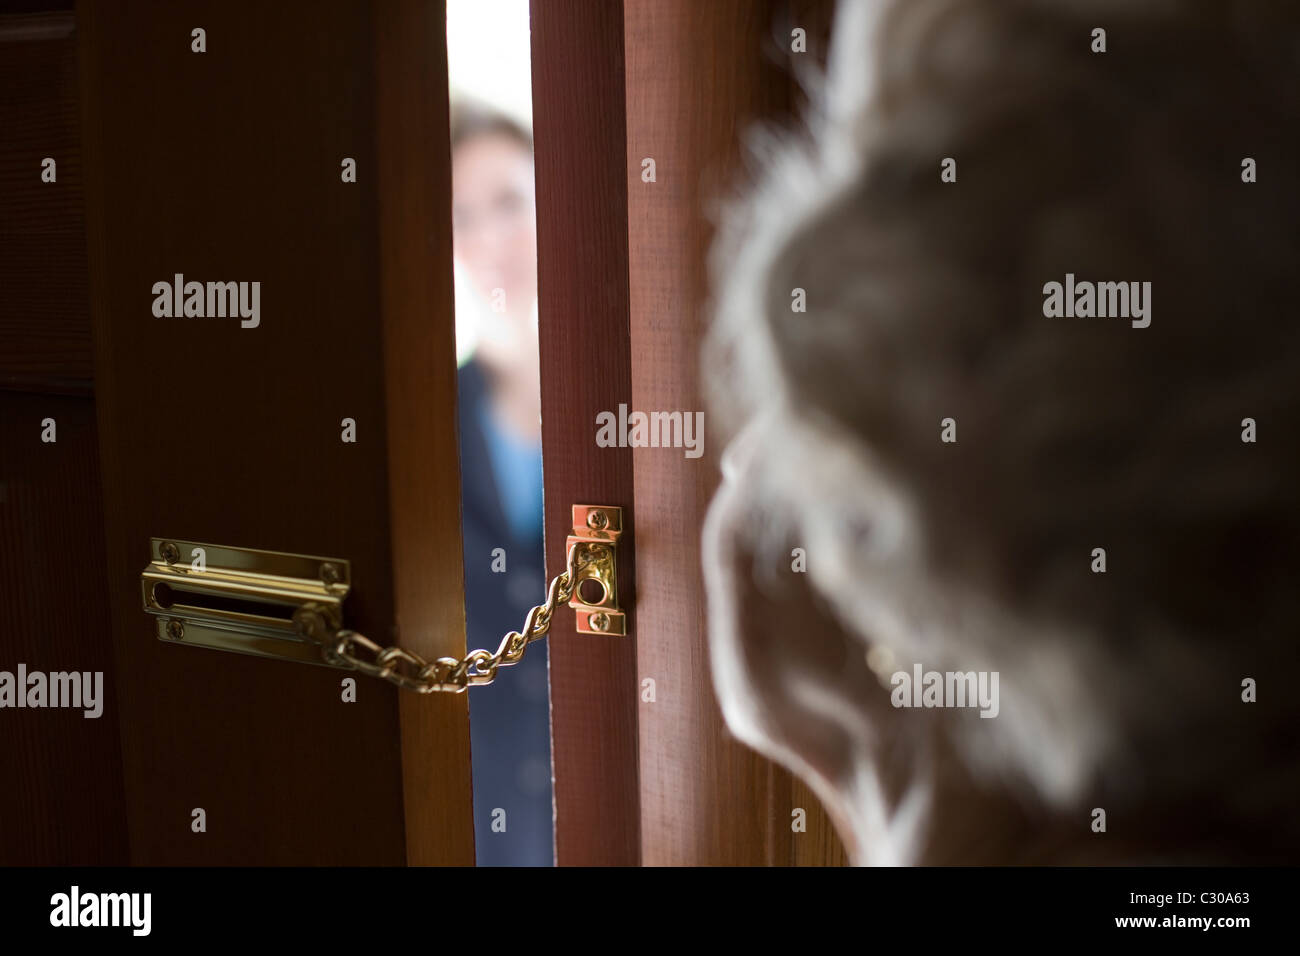 Senior woman using a security chain on front door - Stock Image